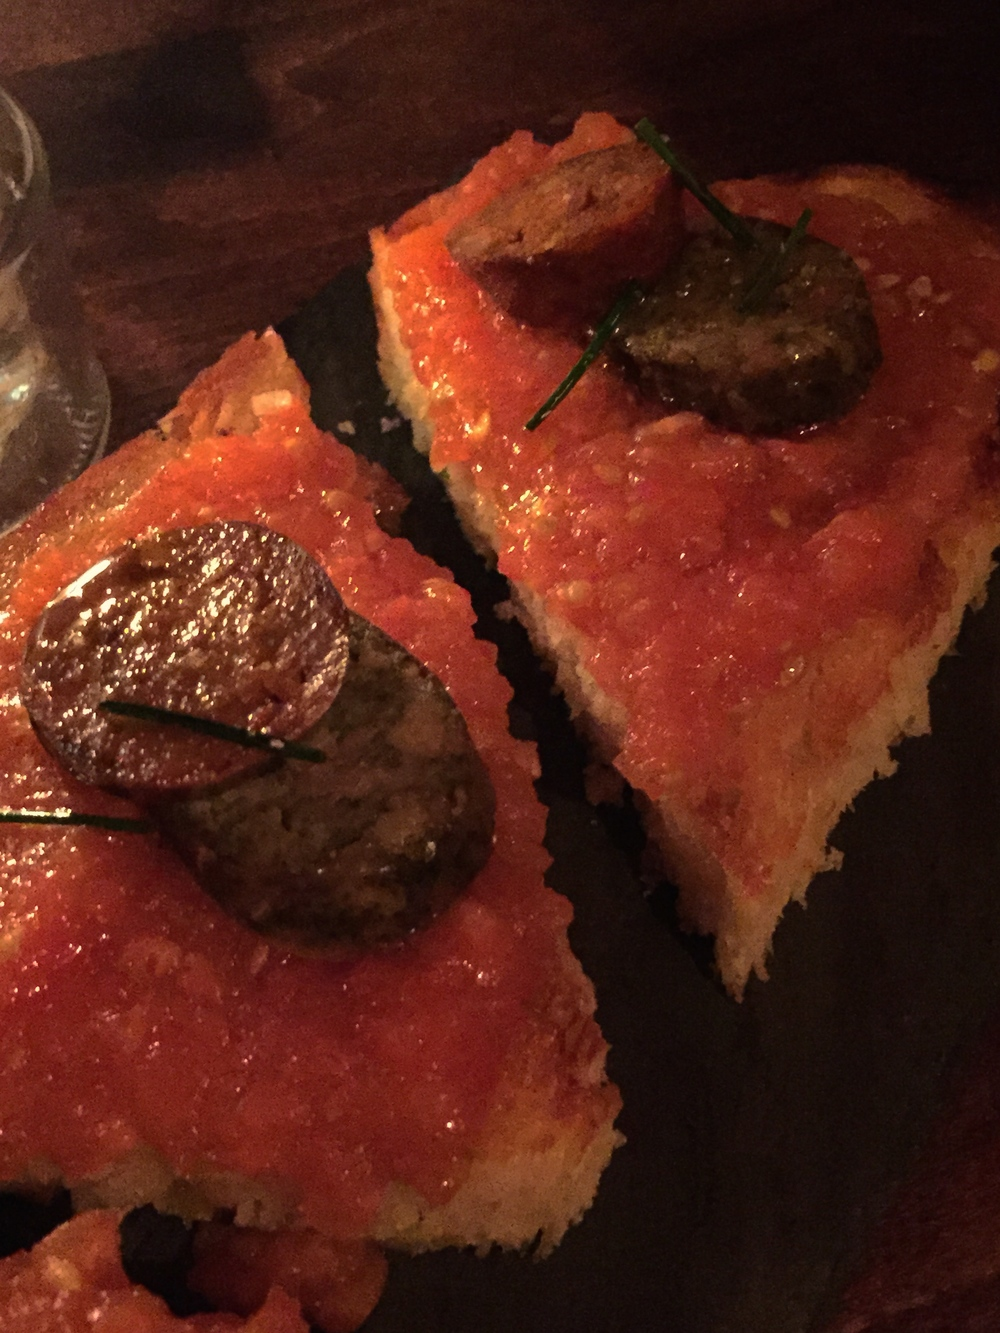 PA AMB TOMACA I LLANGONISSES - catalan tomato toast with house-made red and white sausages